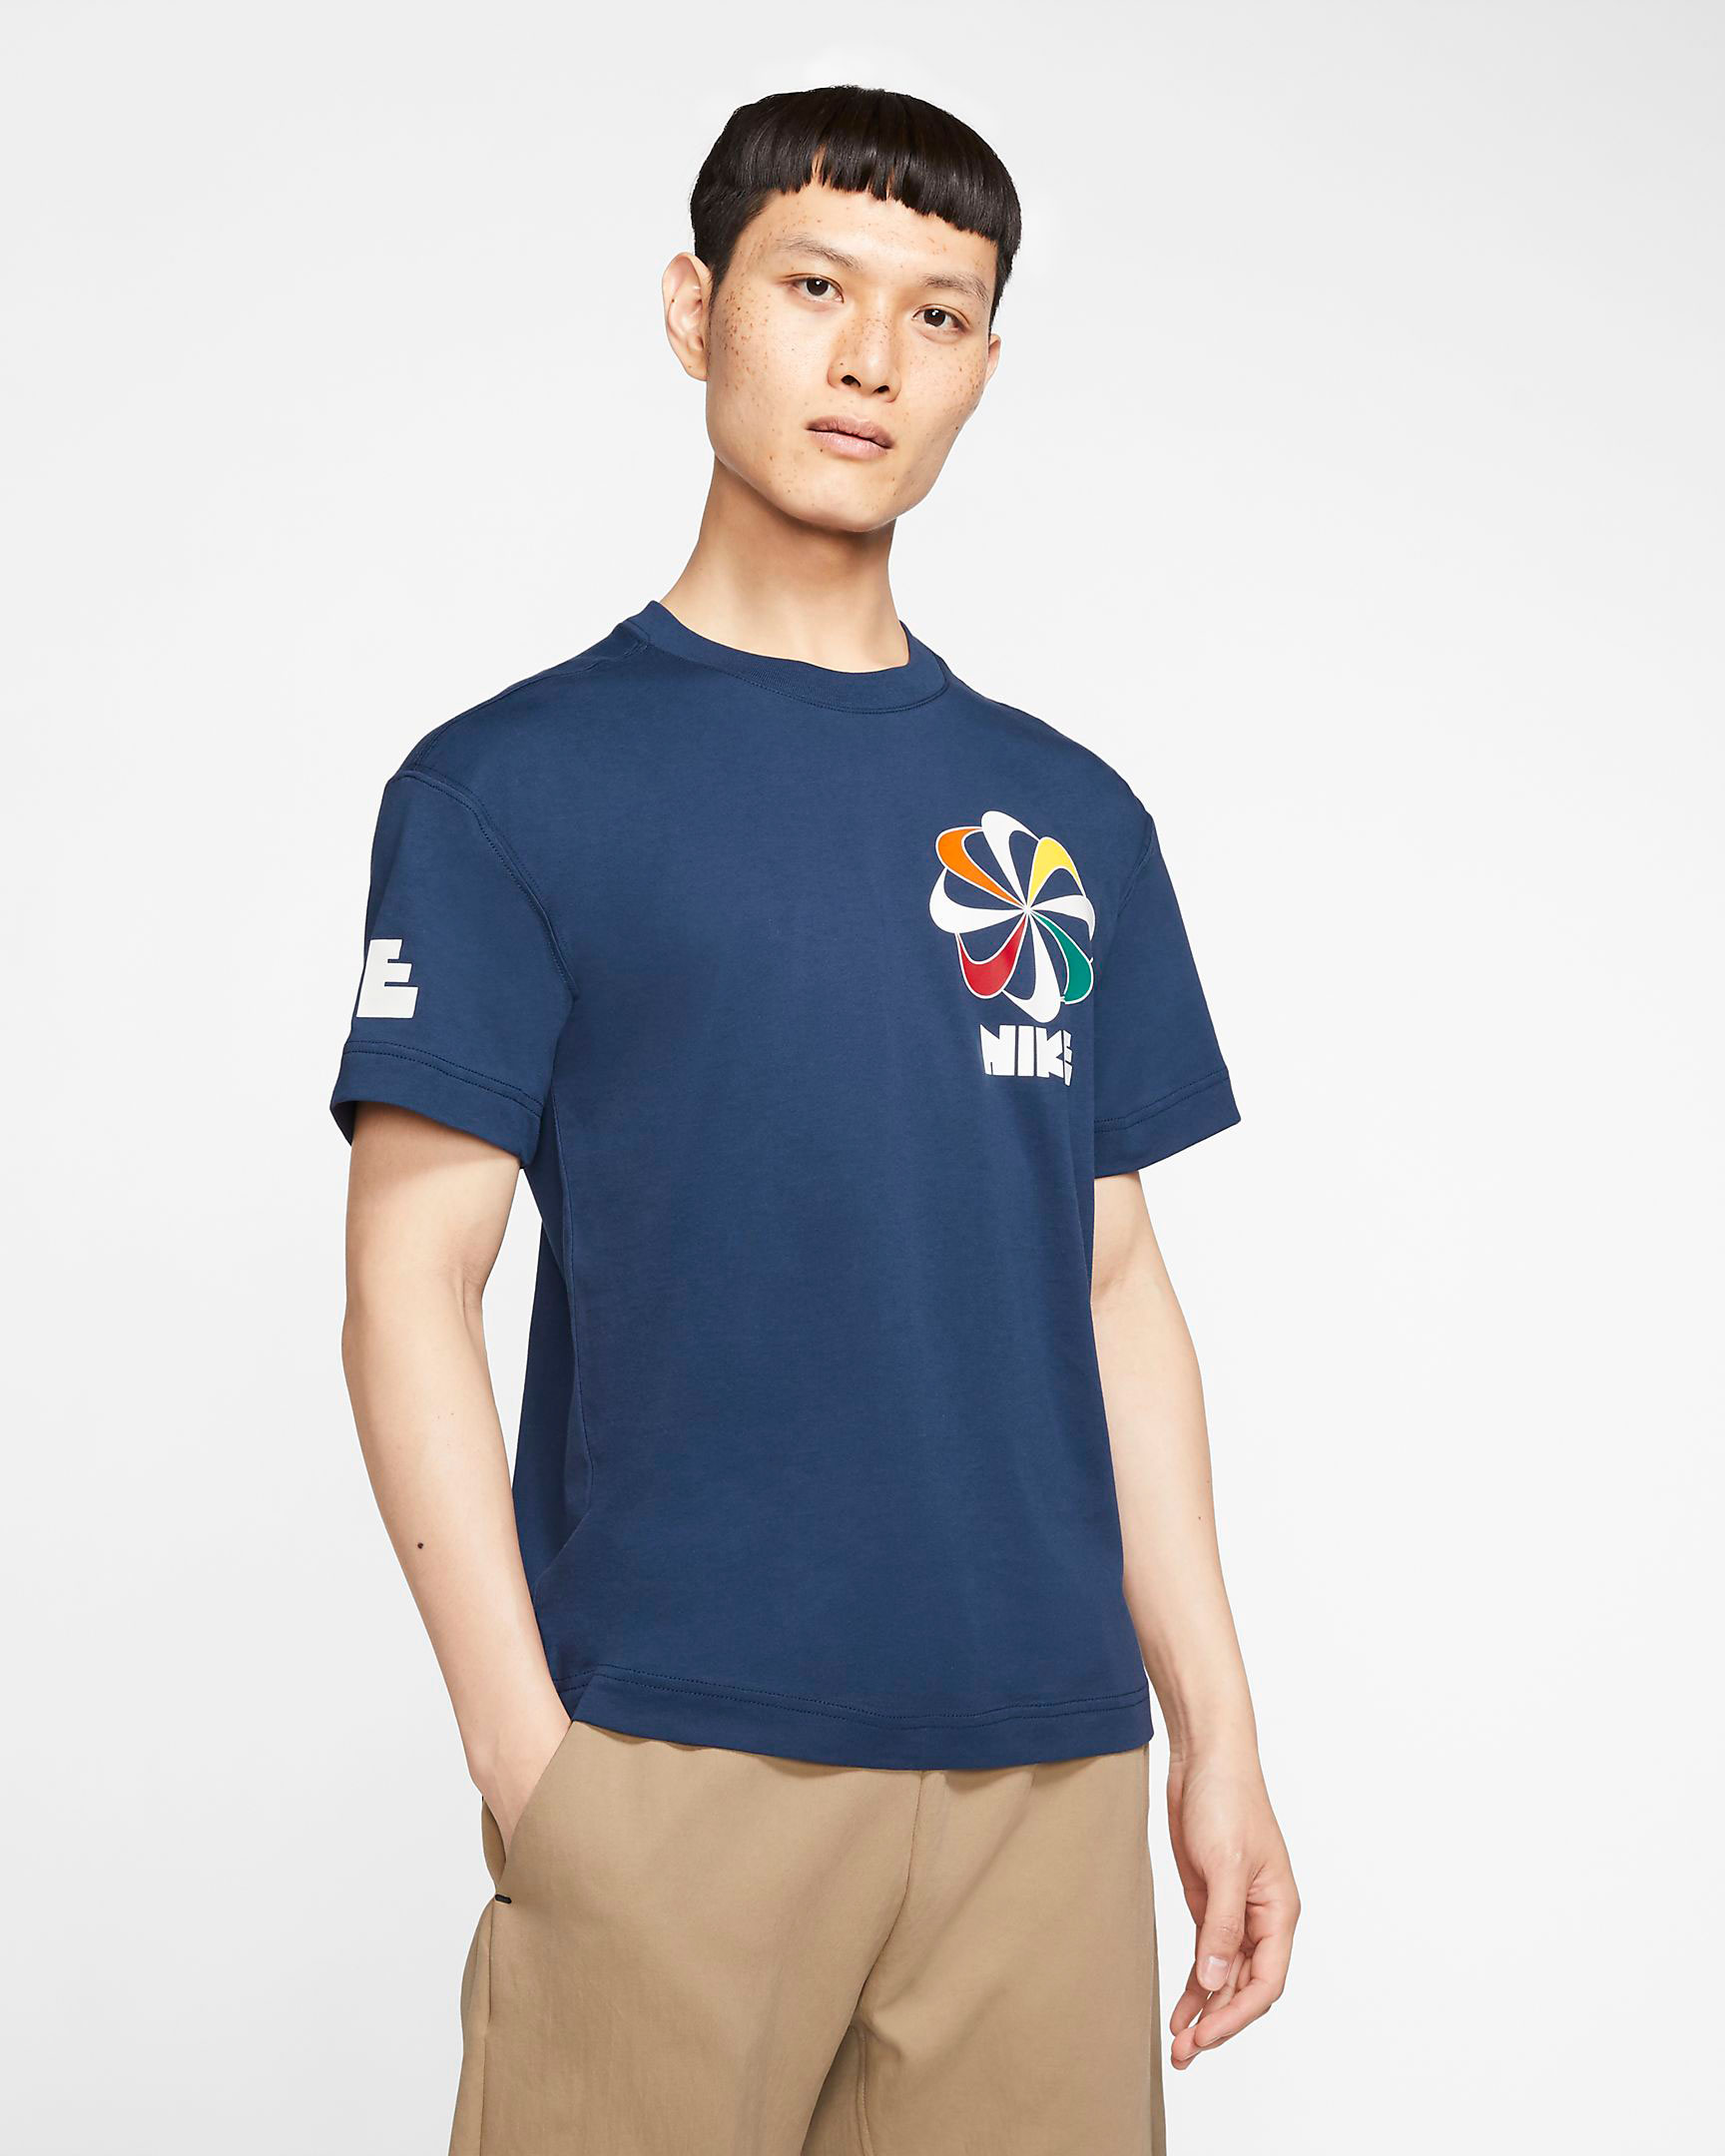 nike-sunburst-pinwheel-shirt-blue